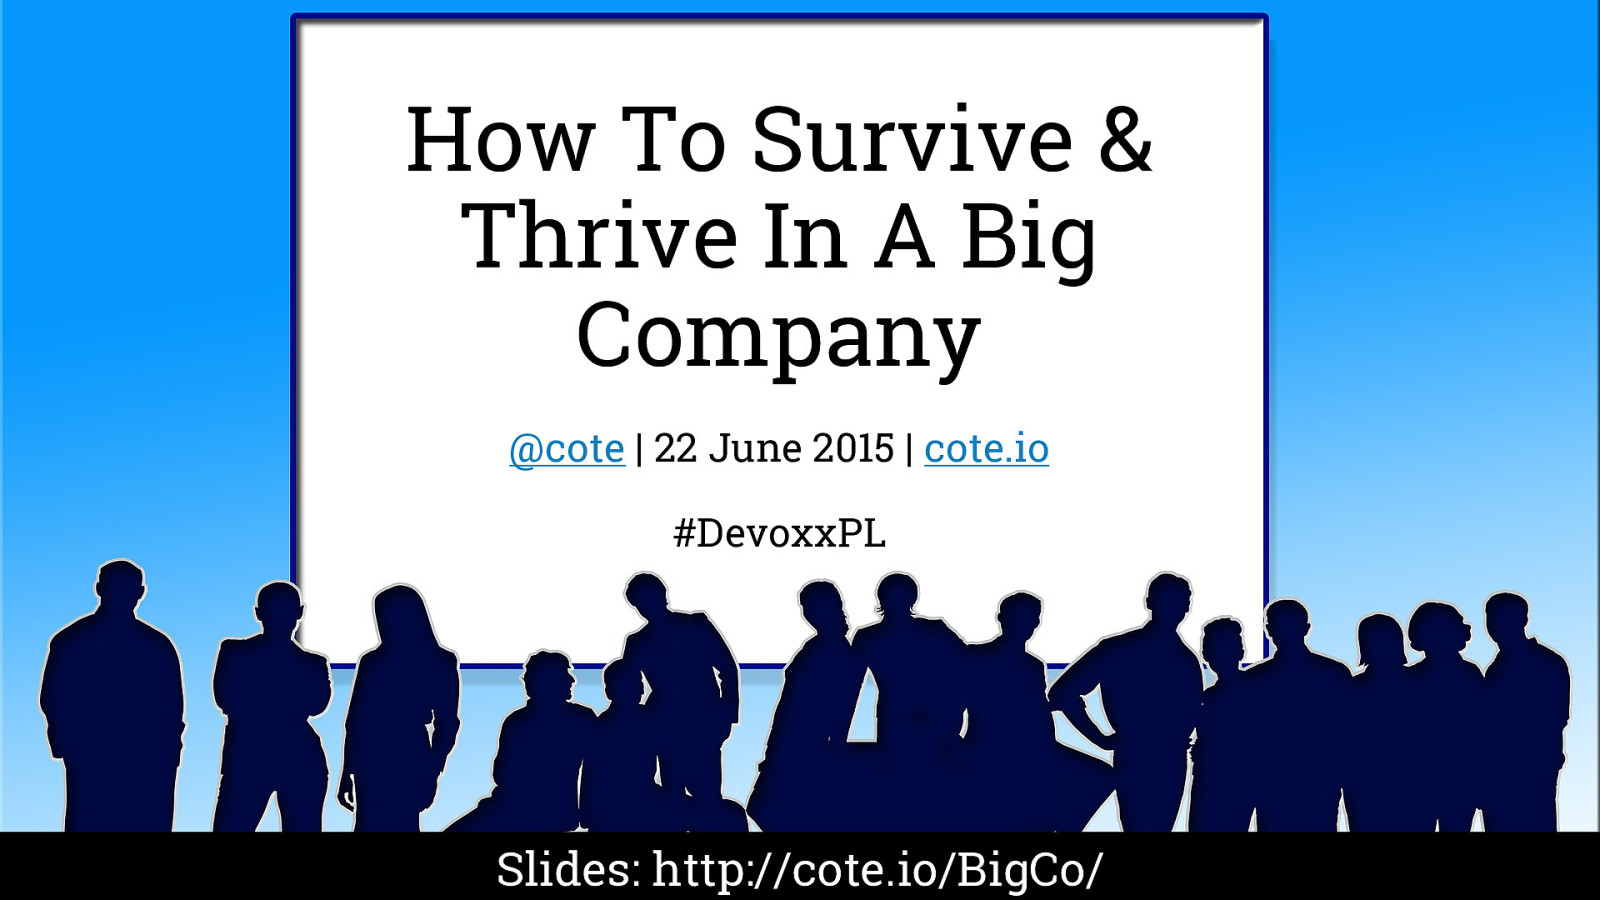 How to survive and thrive in a BigCo